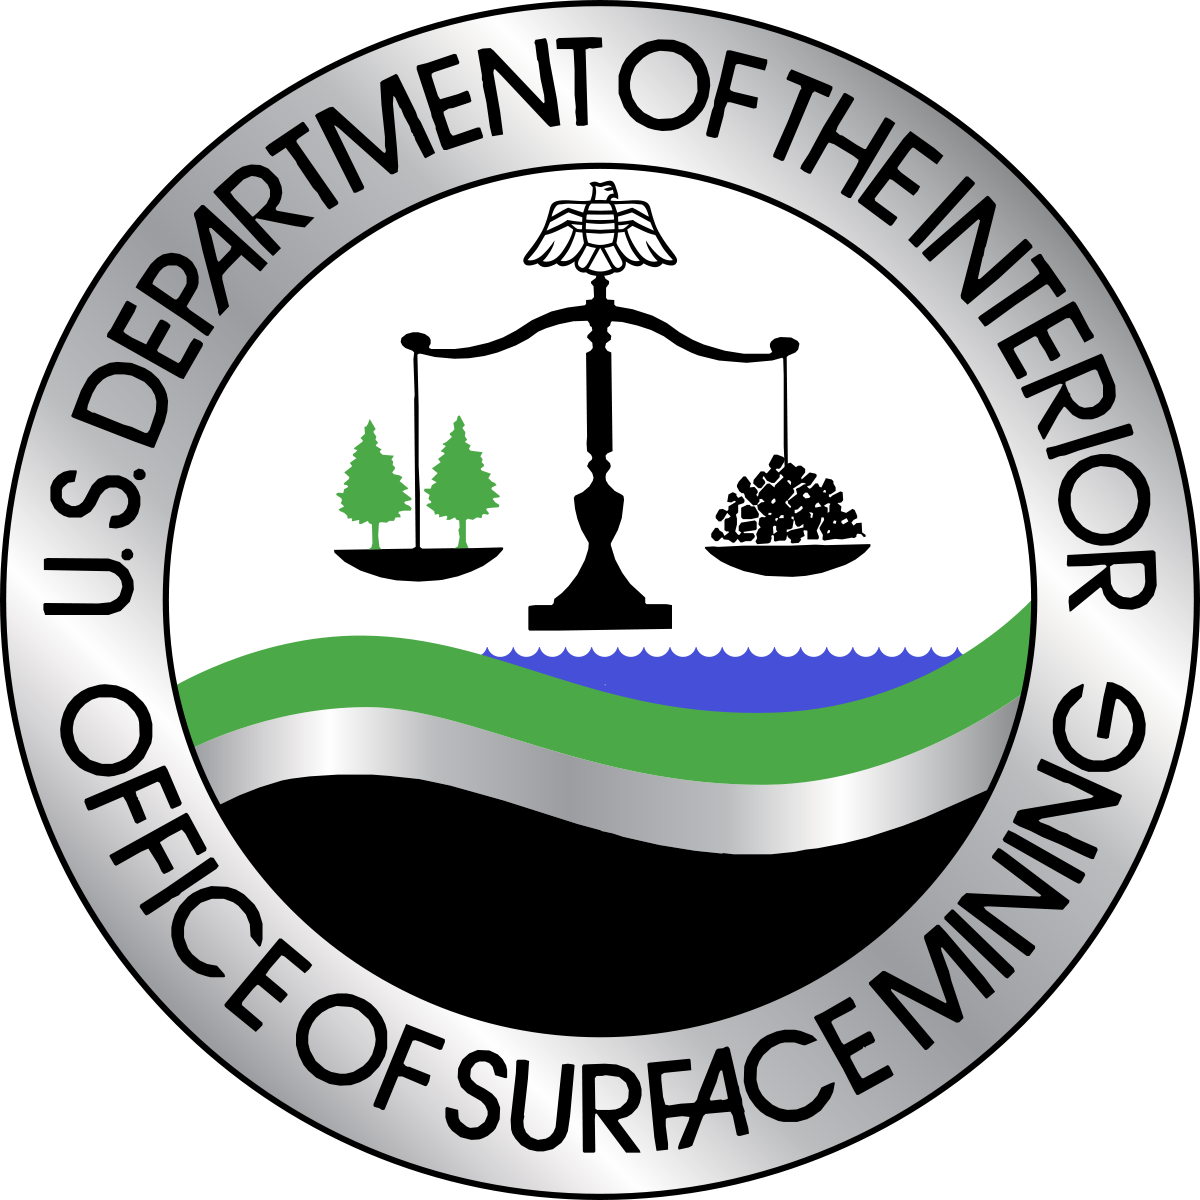 US Department of Interior Office of Surface Mining and Reclamation and Enforcement